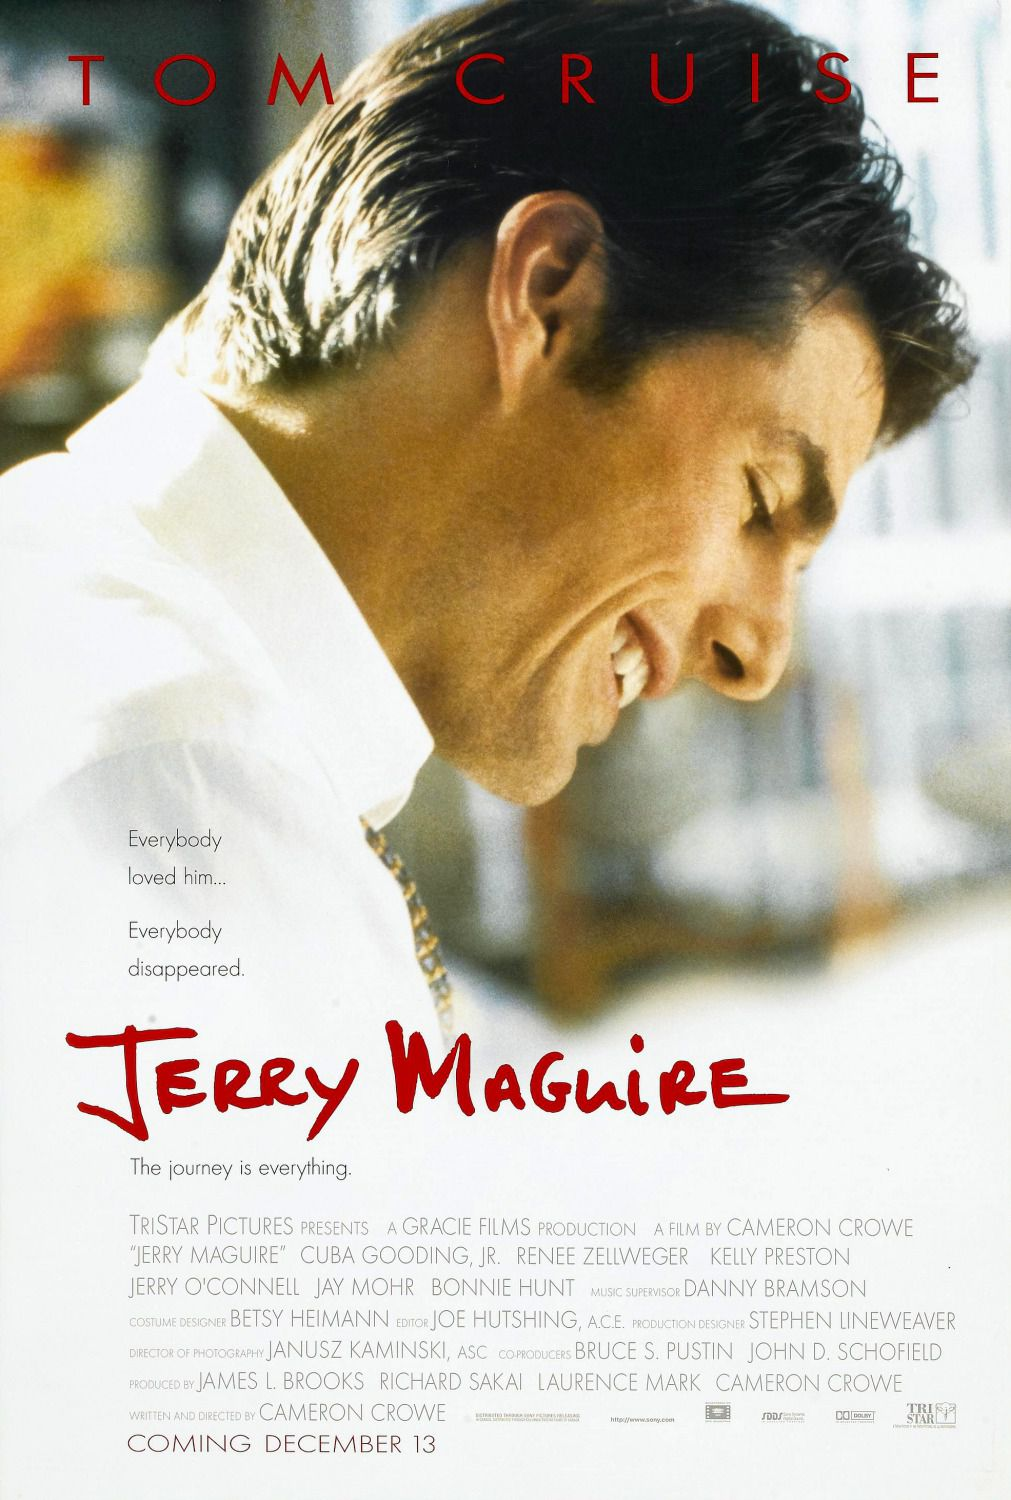 Jerry Maguire - Tom Cruise